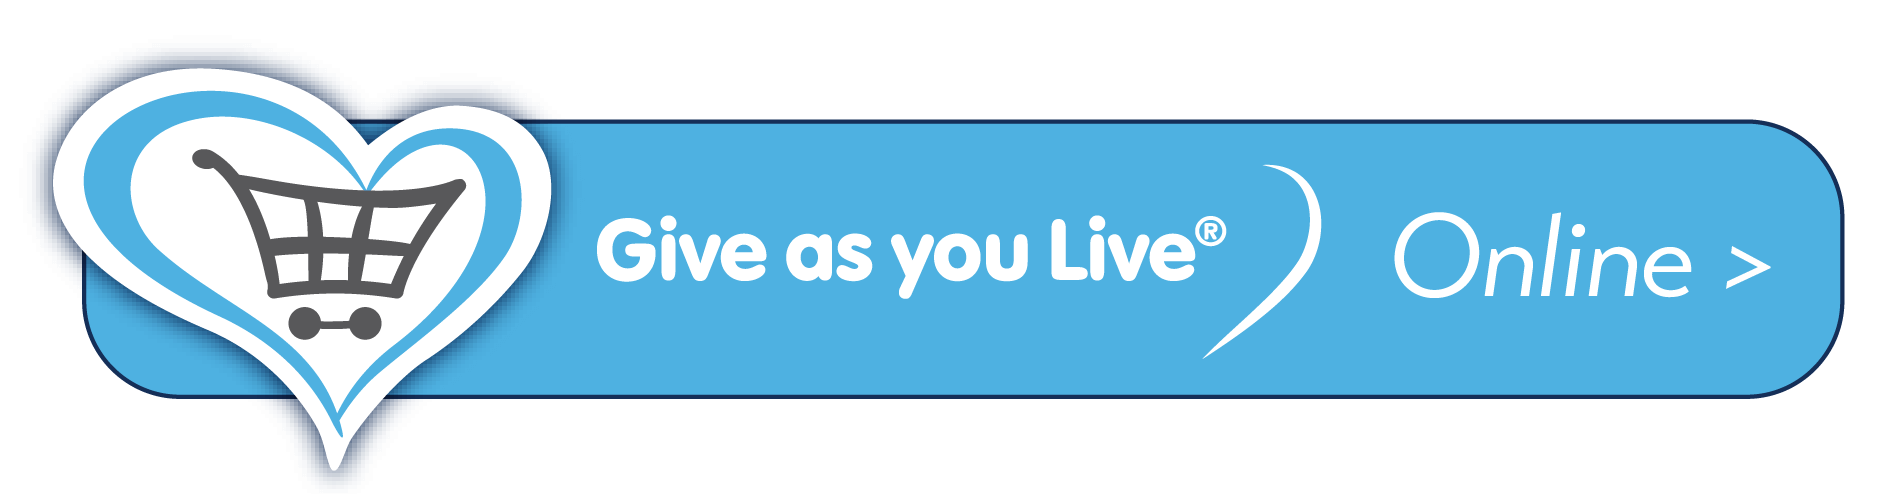 Raise free funds through Give as you Live Online